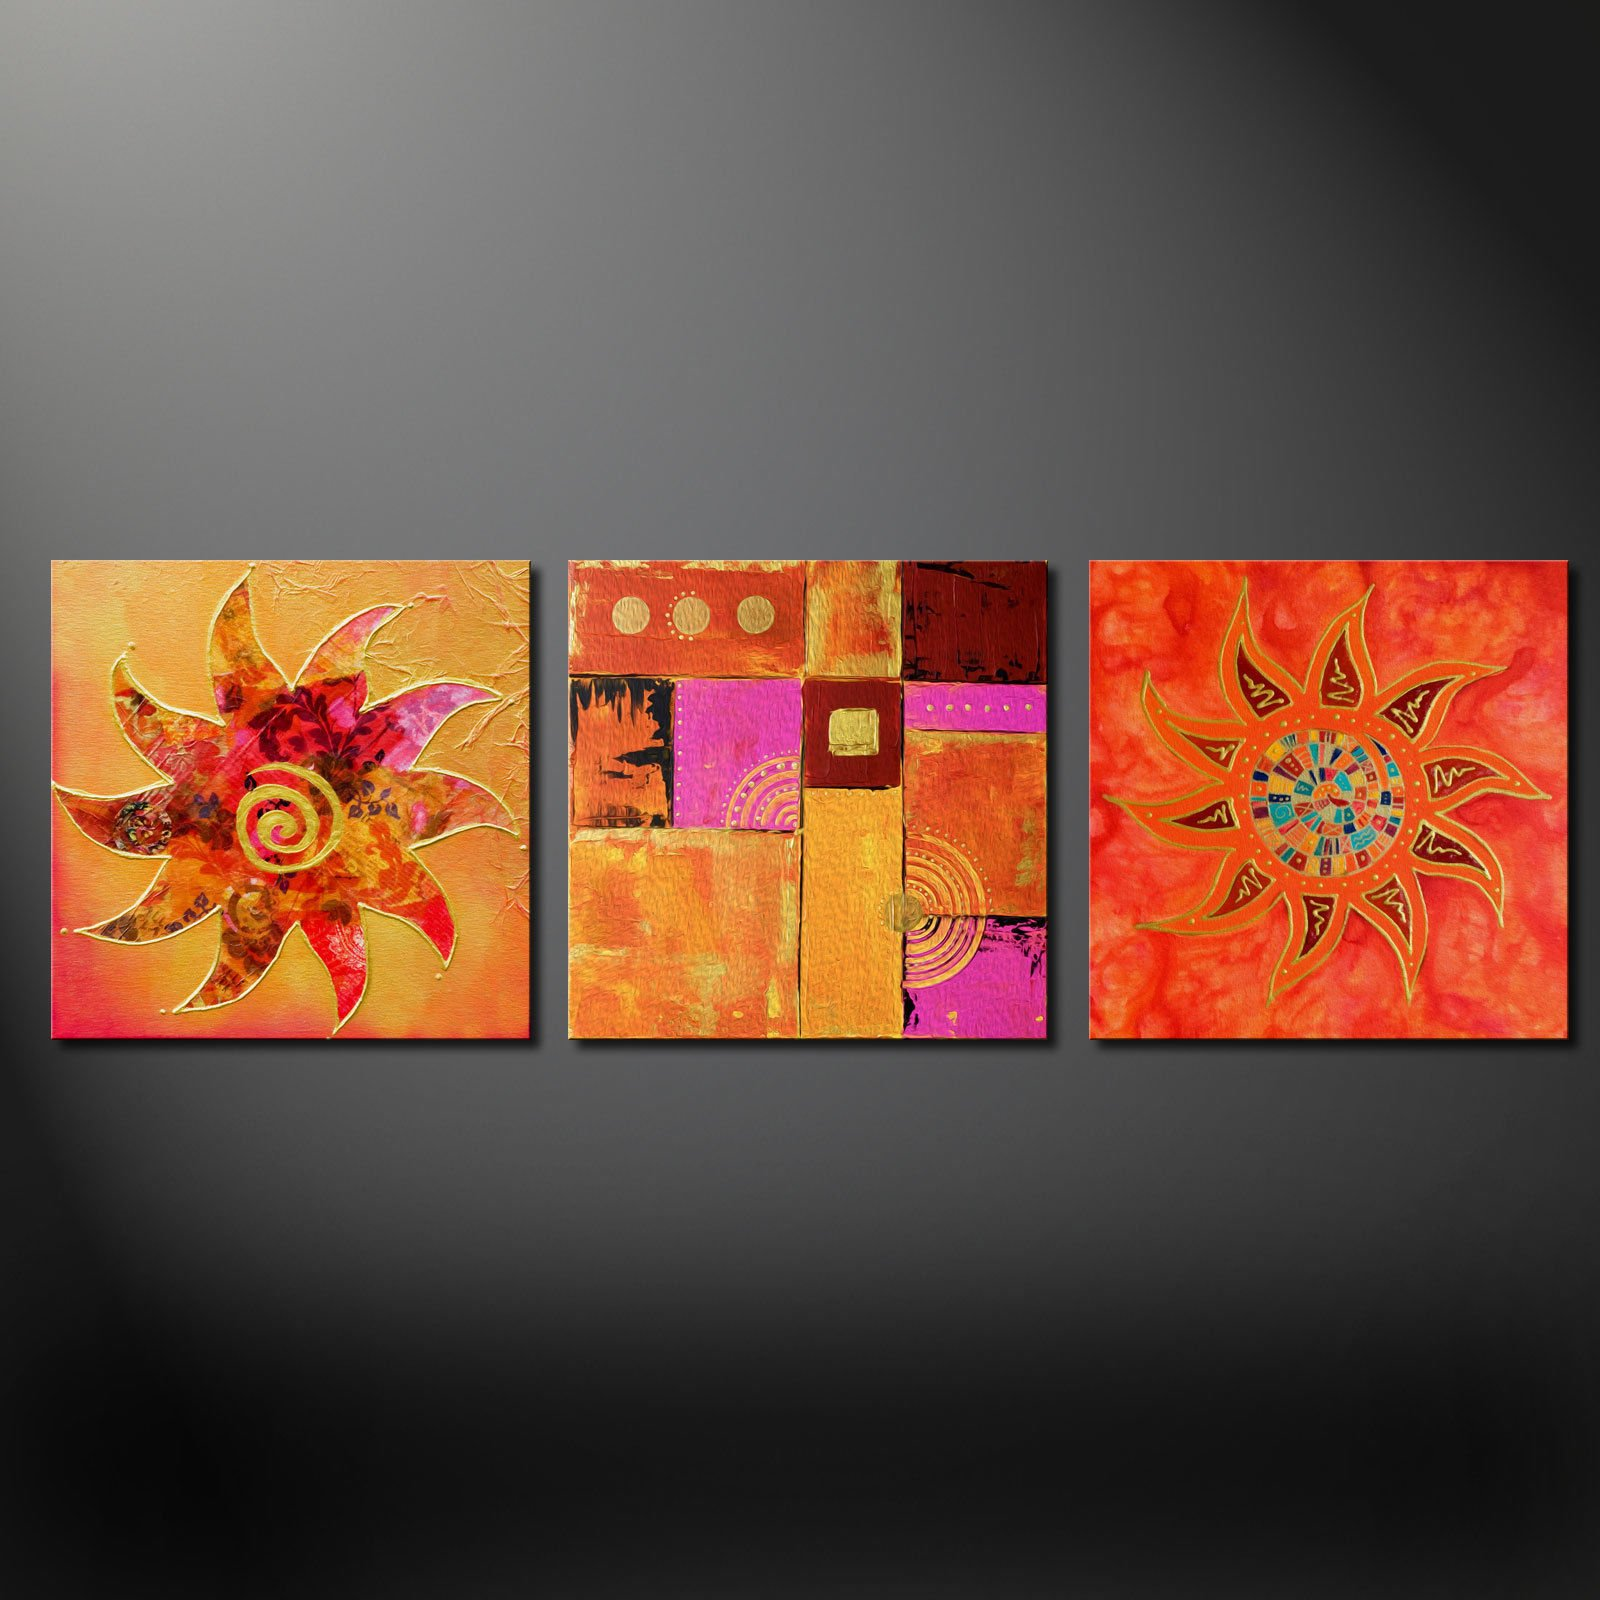 3 Panel Canvas Wall Art Uk - forest canvas   ebay with